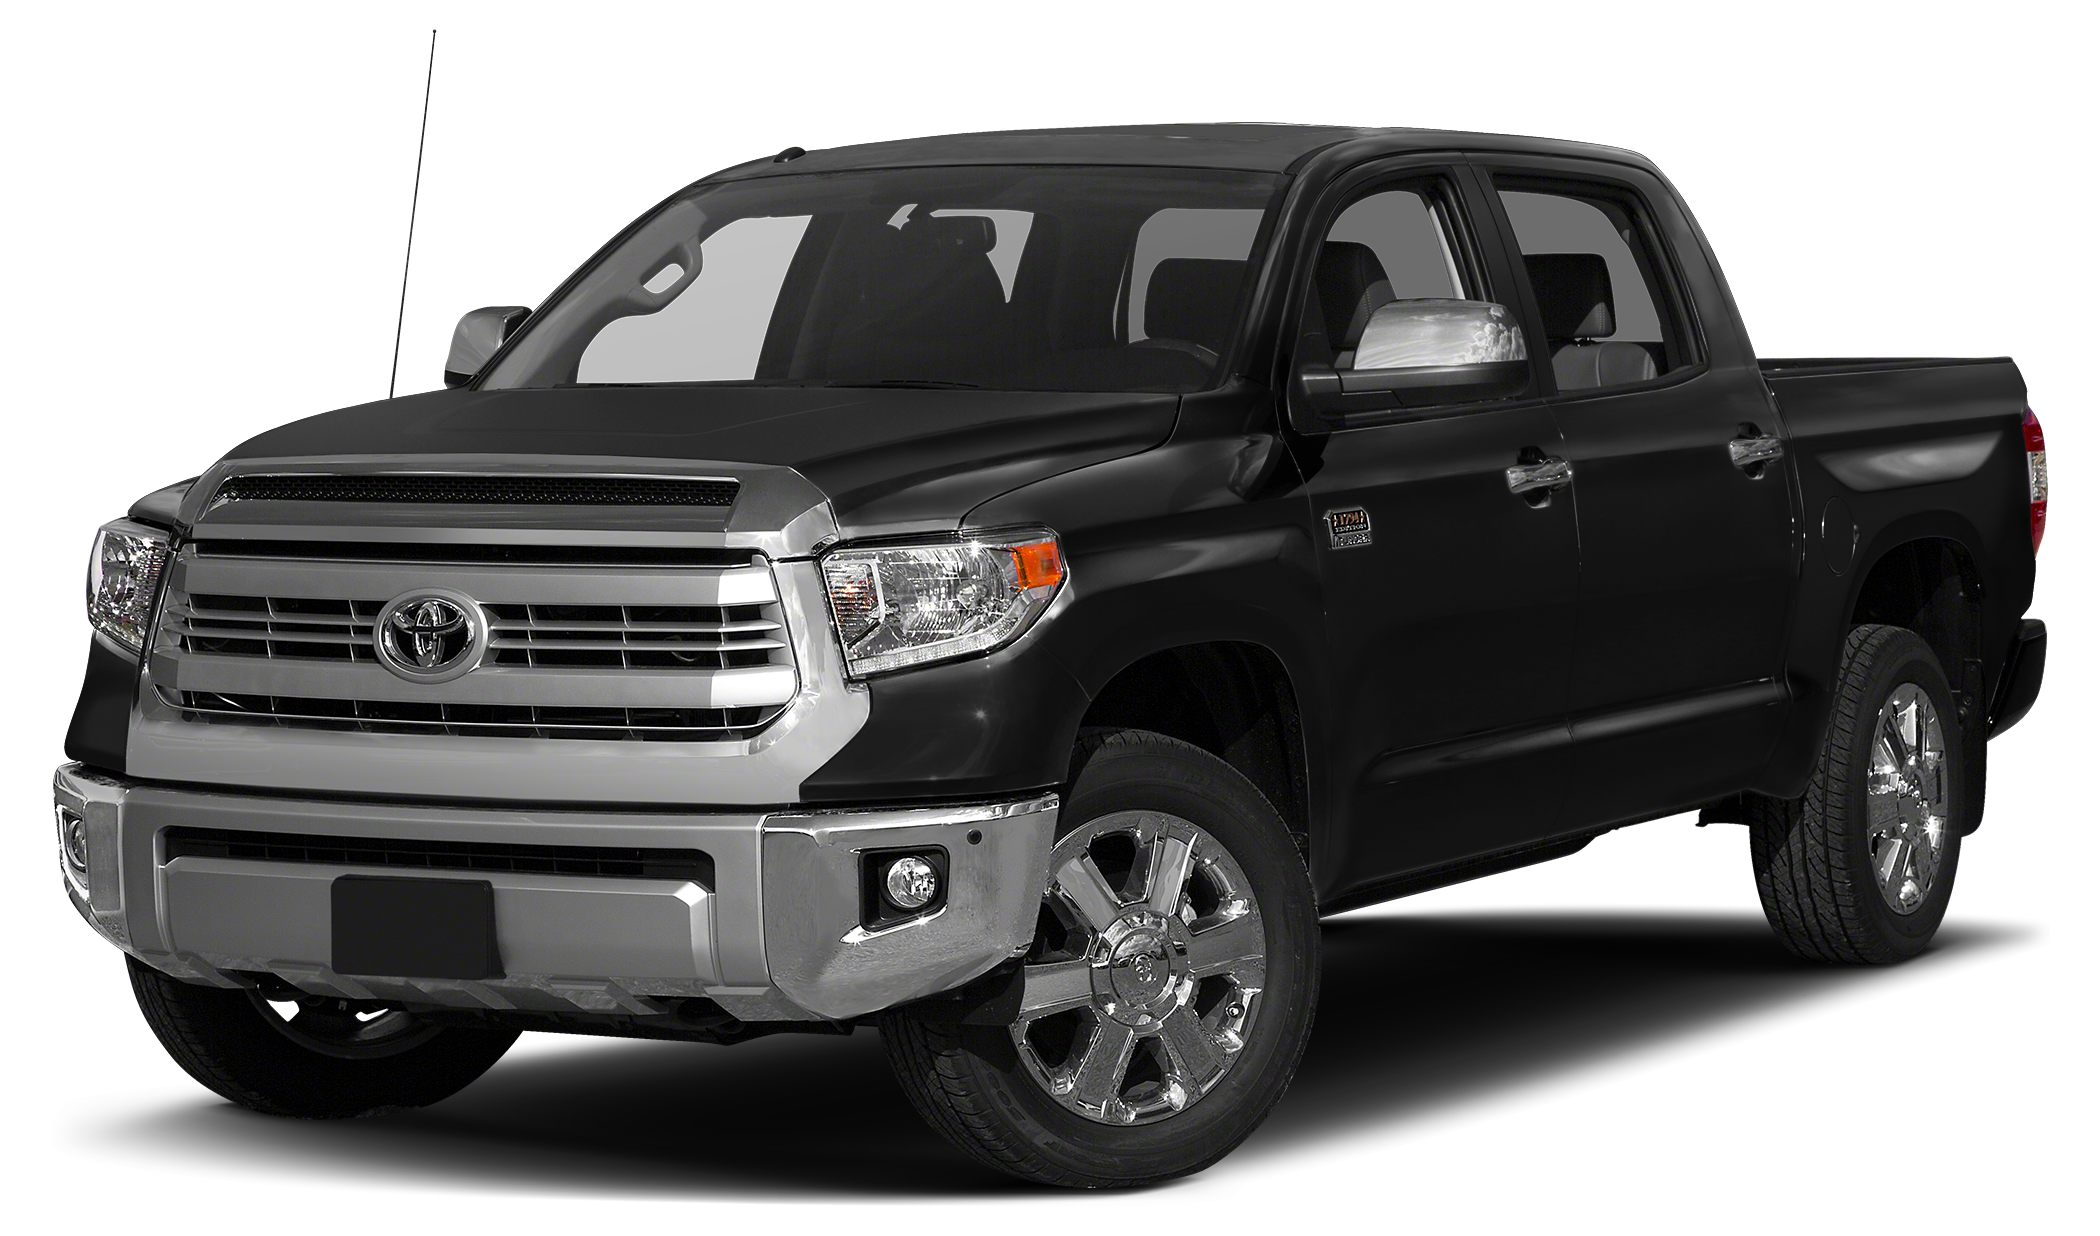 2016 Toyota Tundra 1794 Toyotas full-size truck the Tundra is a hard-core workhorse with an edgy